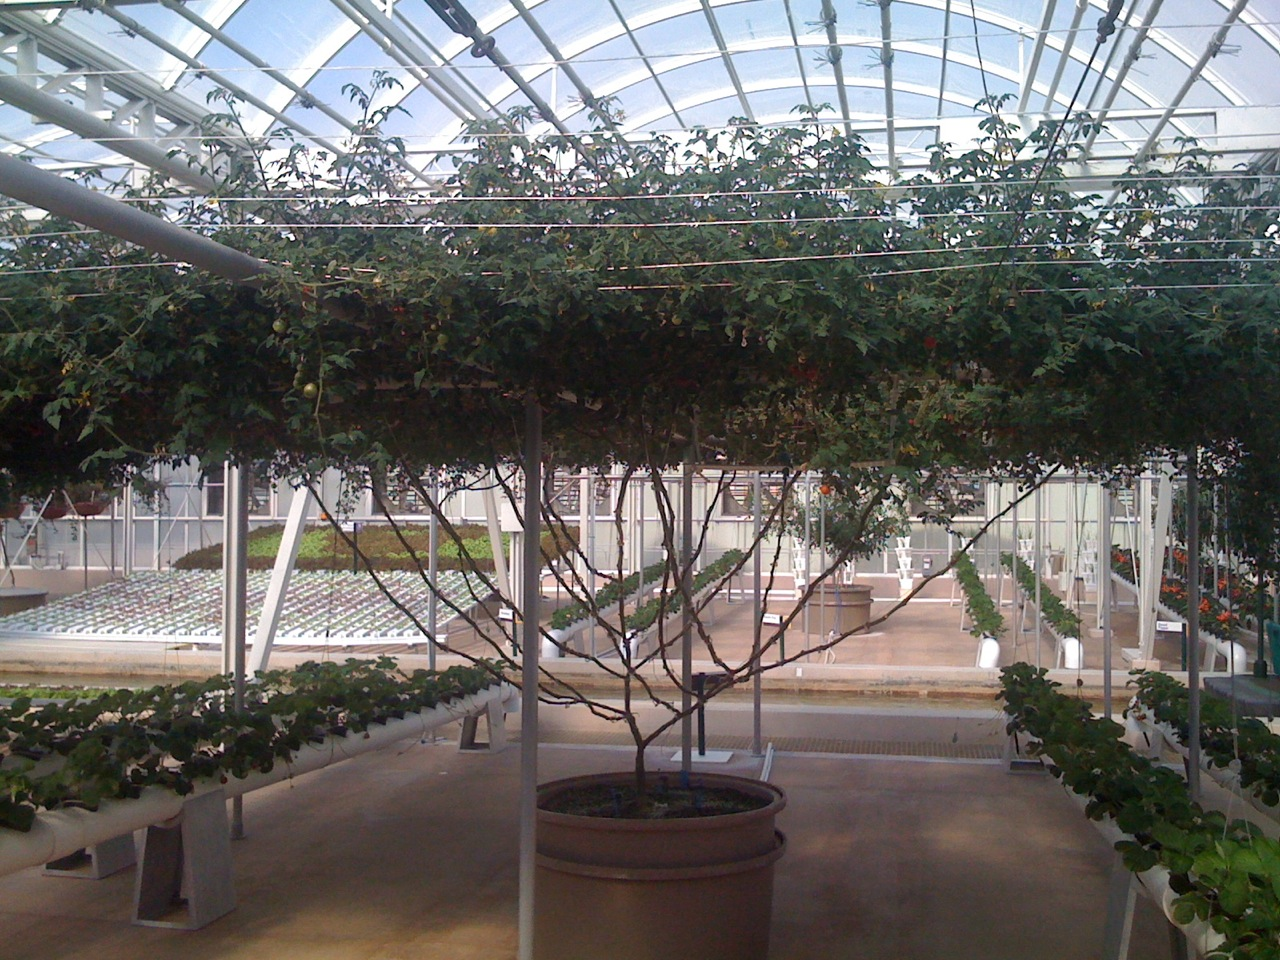 Giant-Largest-World-Record-Tomato-Tree-Ever-Disney-Epcot-Seeds-of-Life-Tour